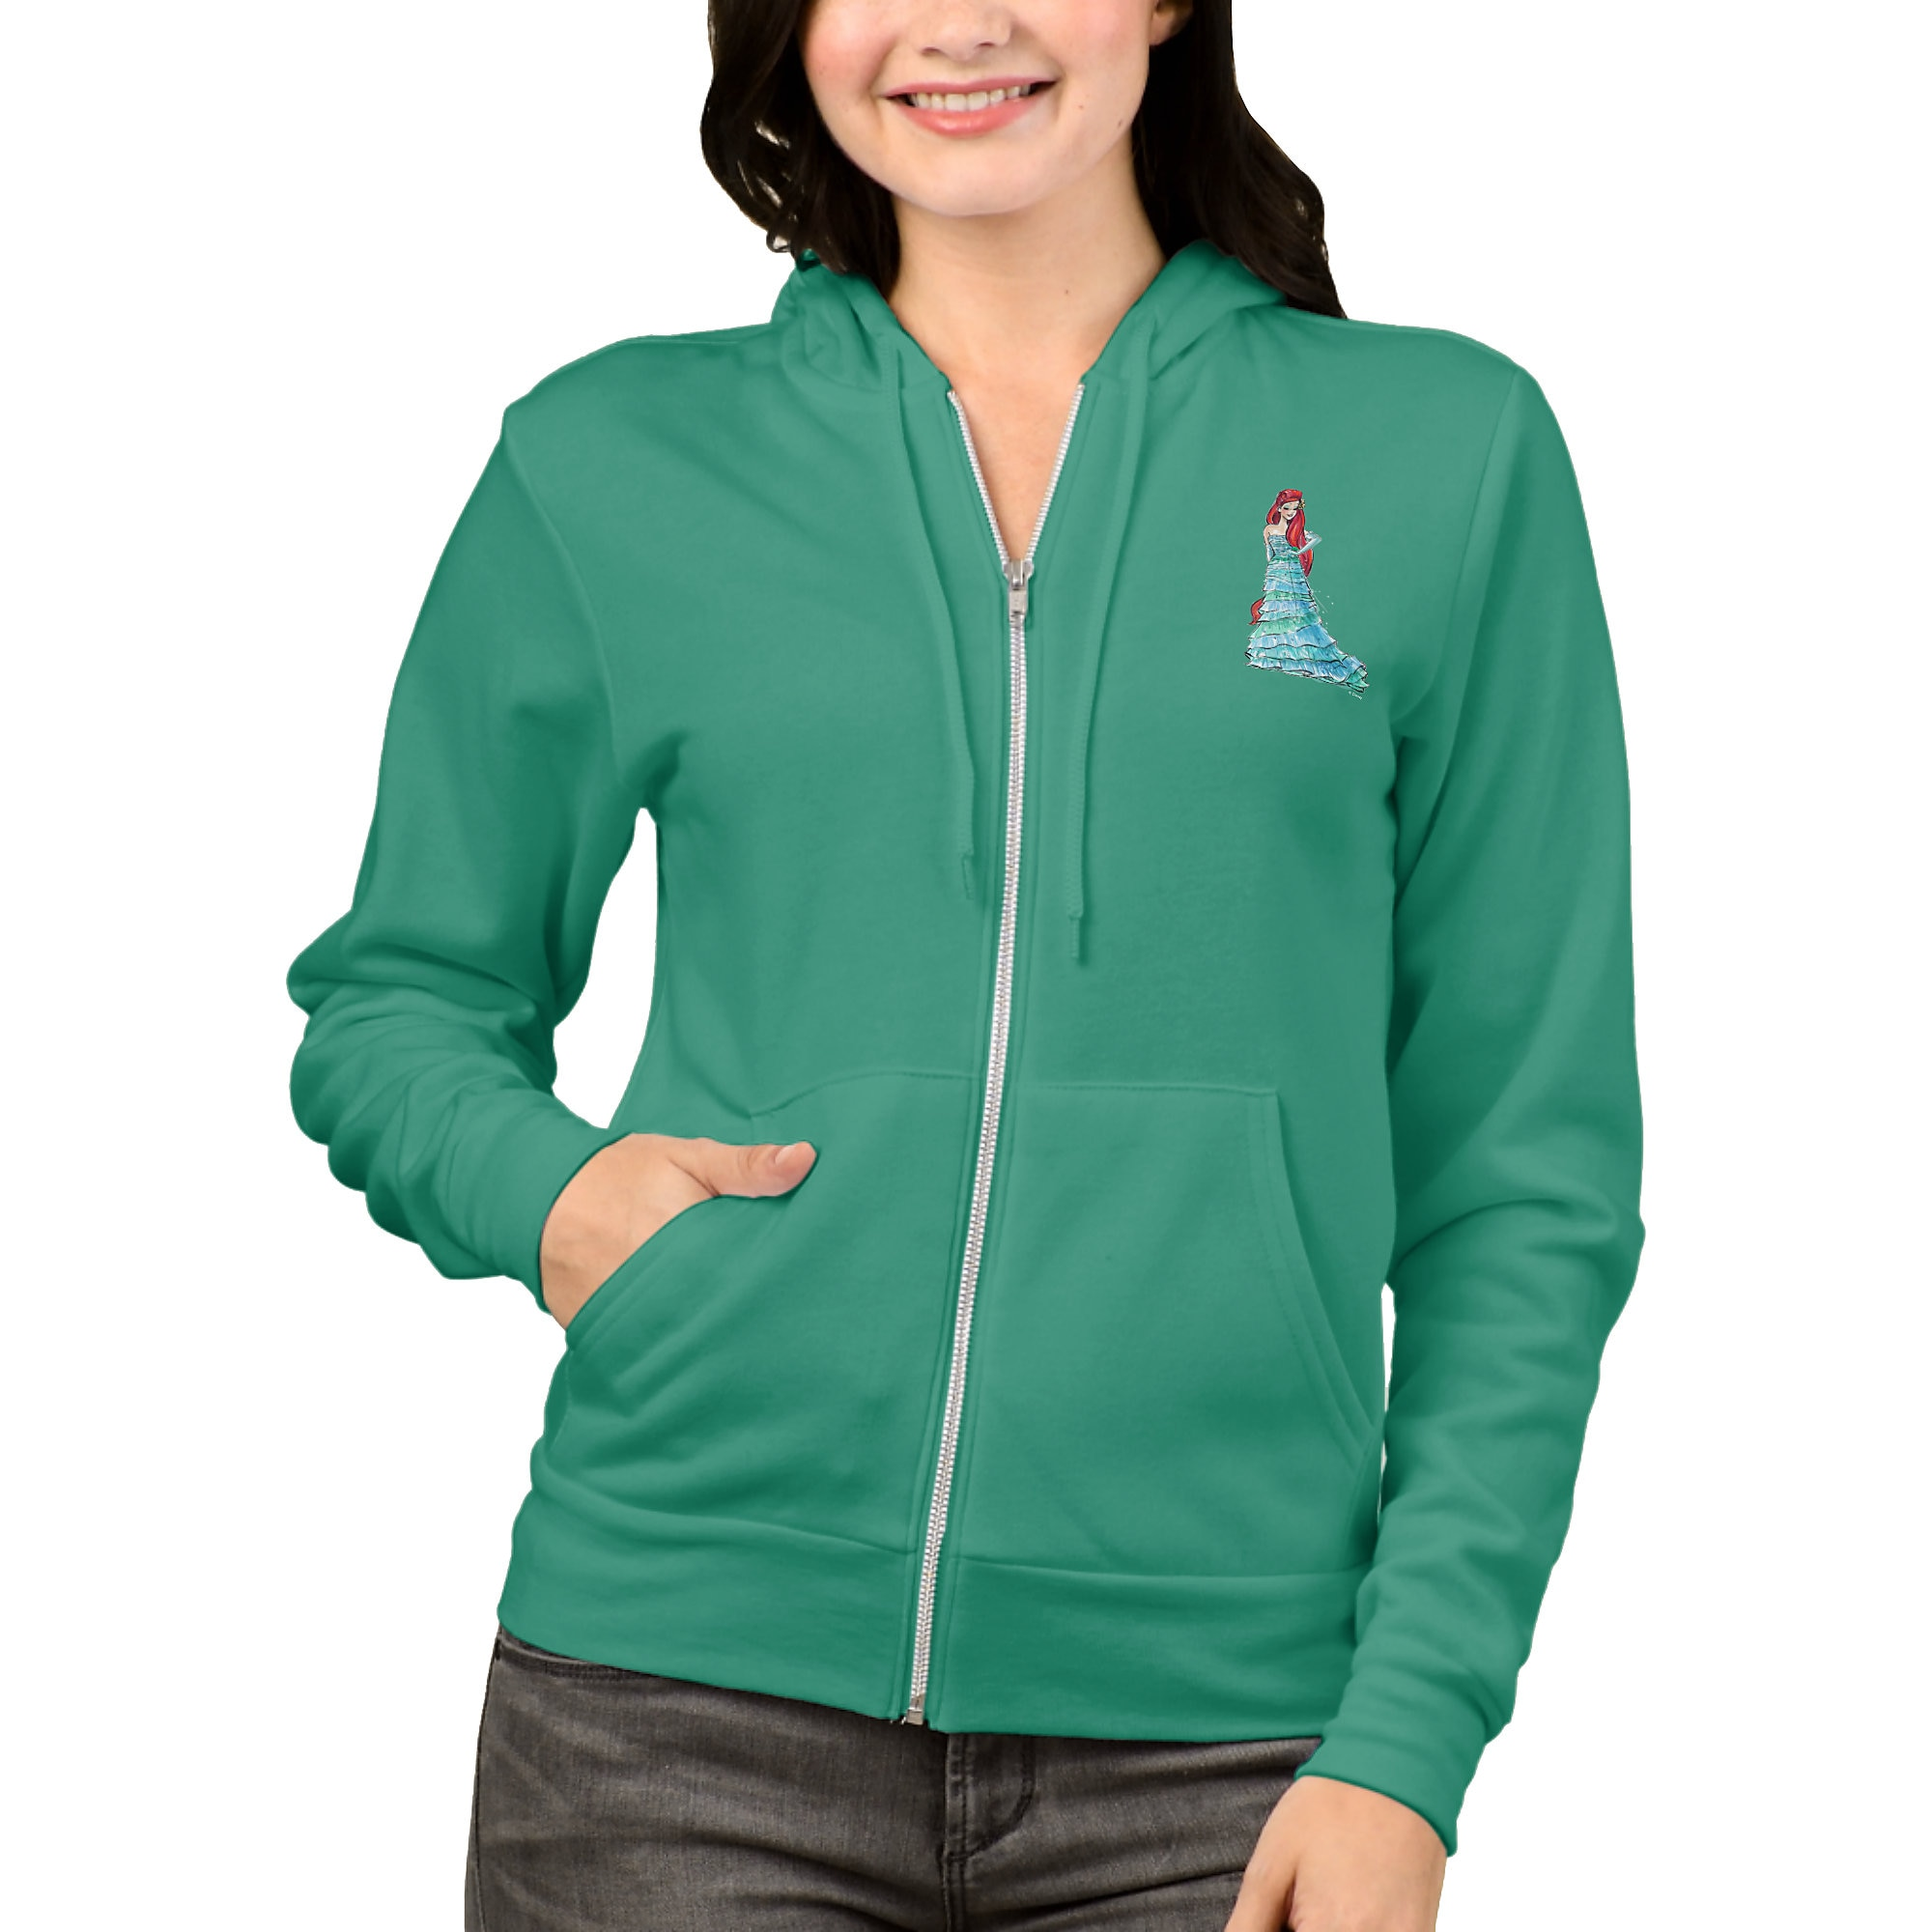 Ariel Zip Hoodie for Women - Art of Princess Designer Collection